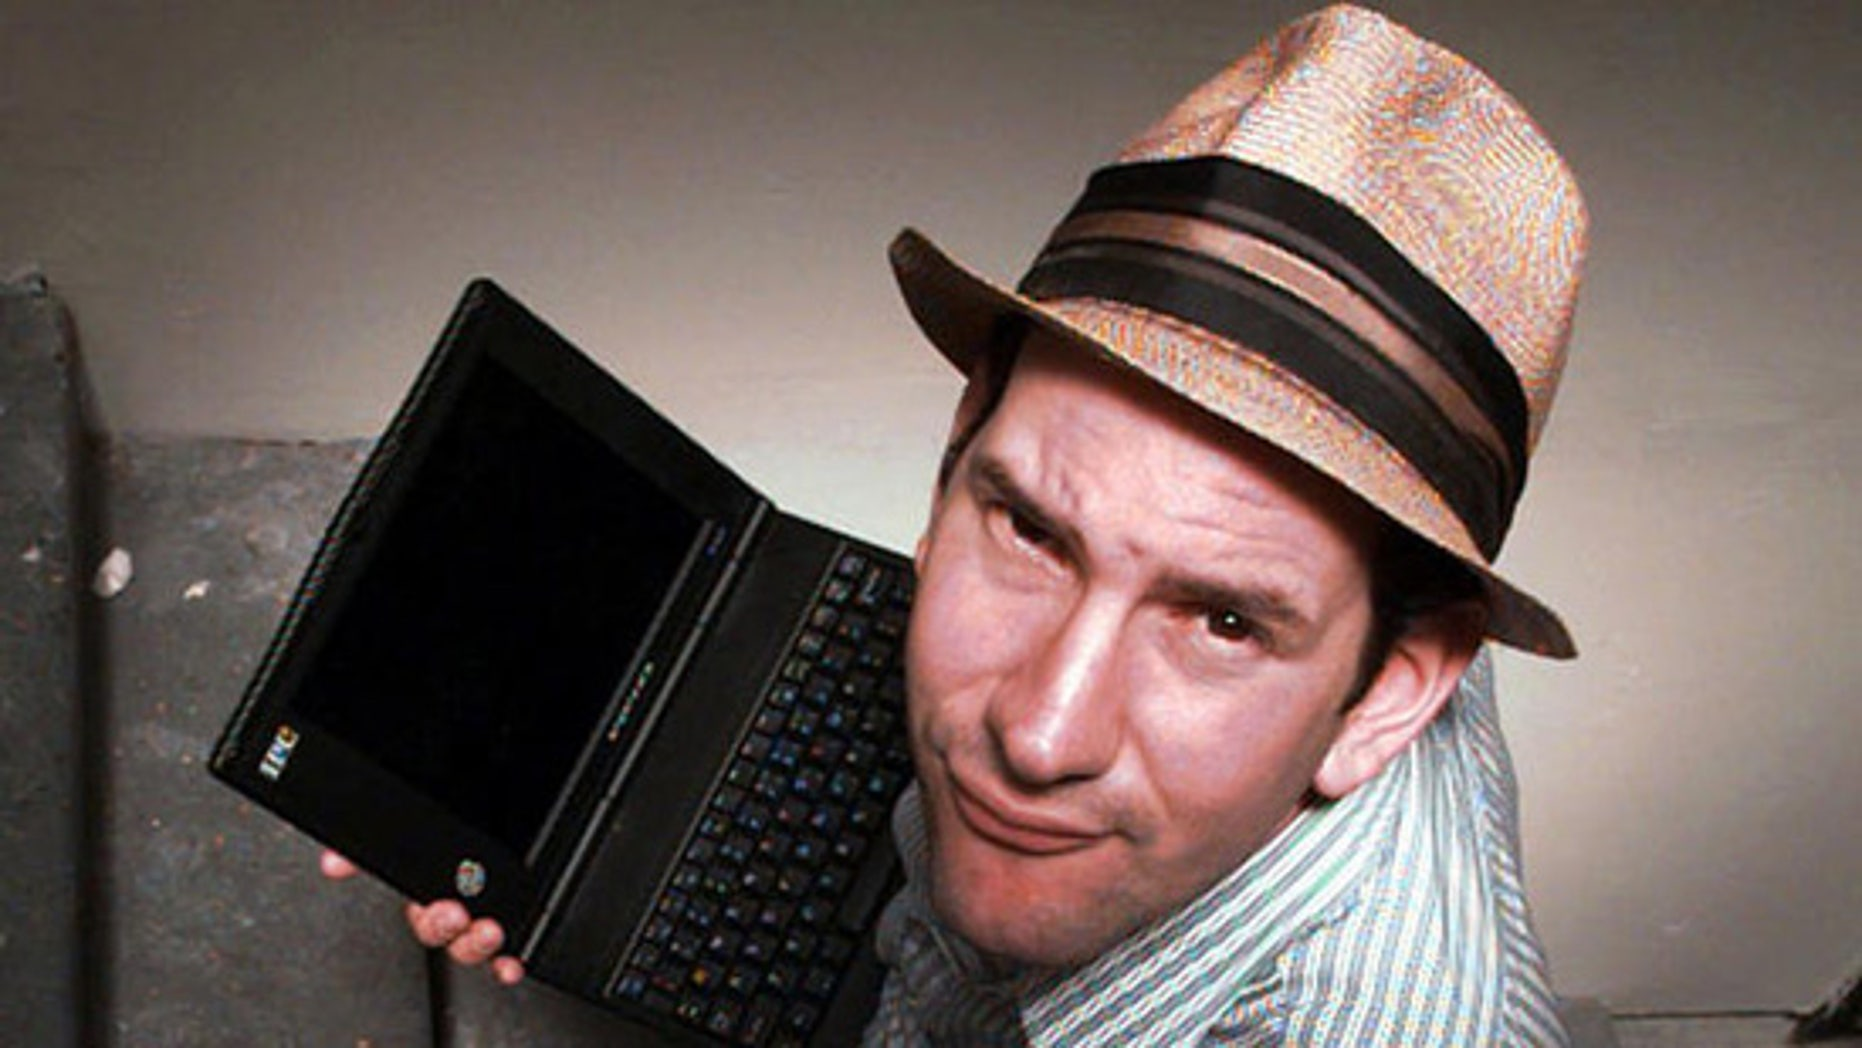 Matt Drudge is the founder of the popular online news site The Drudge Report, which has been charged by the Senate with spreading computer viruses. (AP)